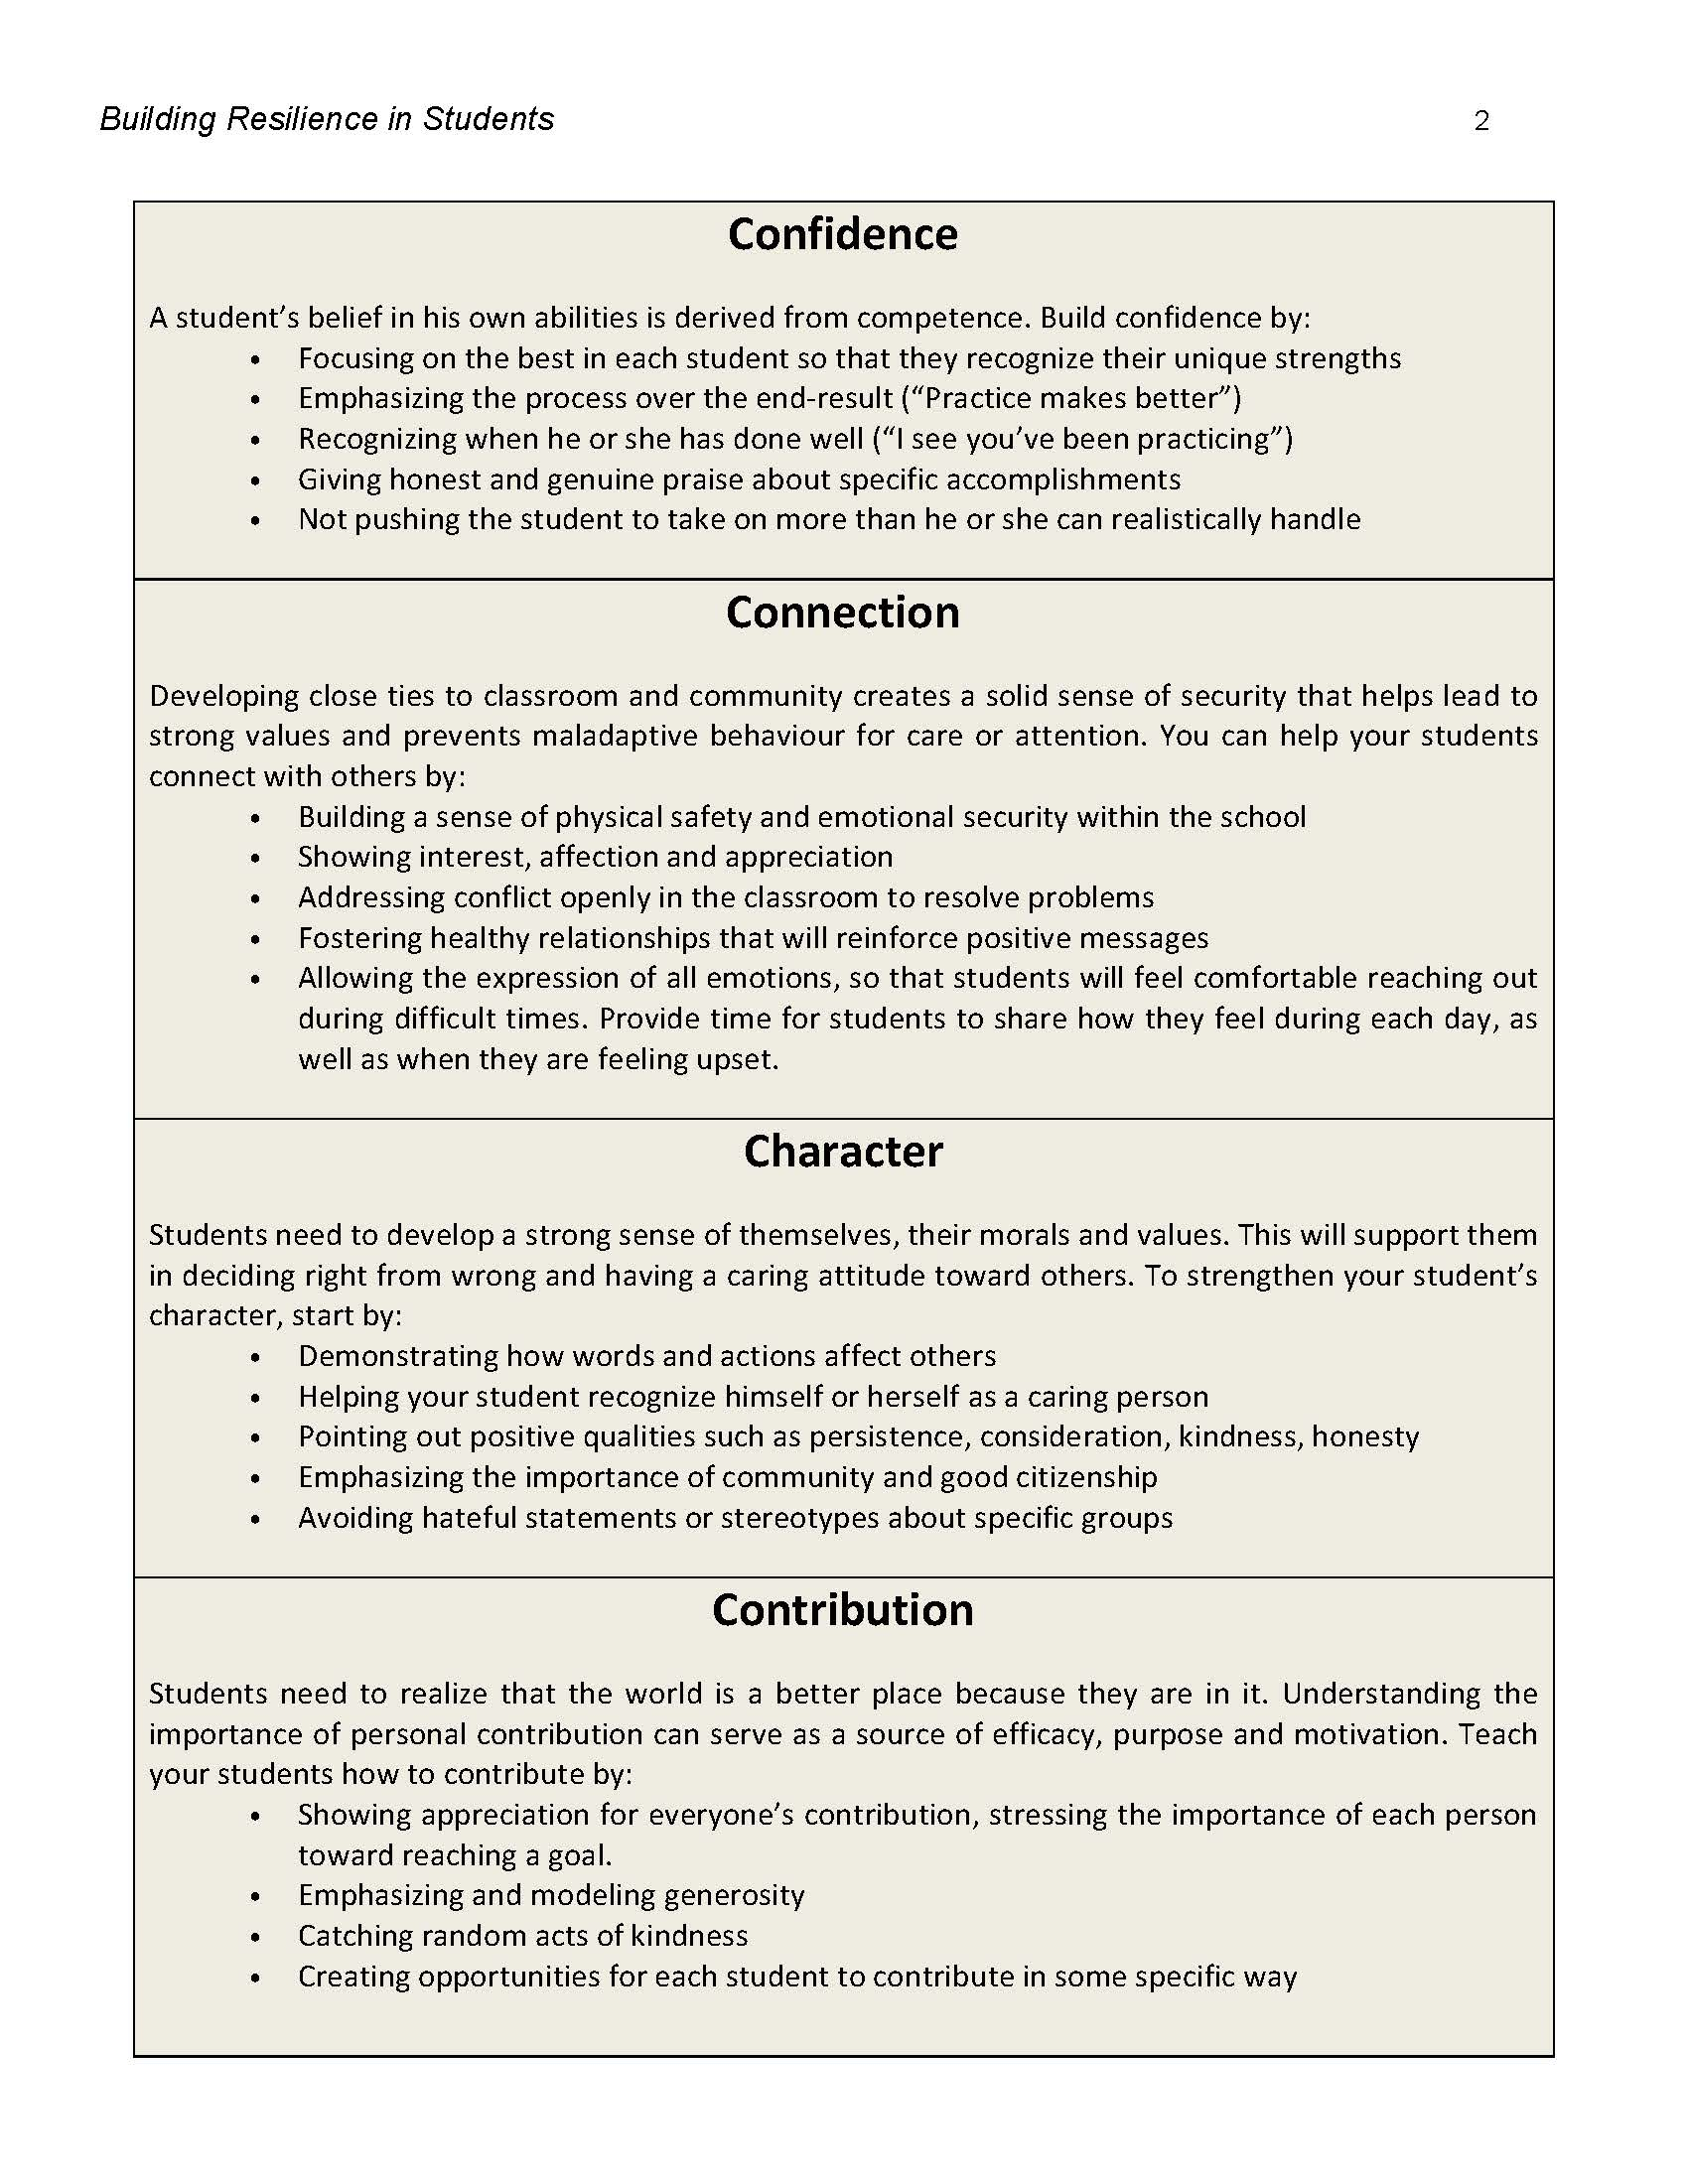 Building Resilience in Students- handout_Page_2.jpg